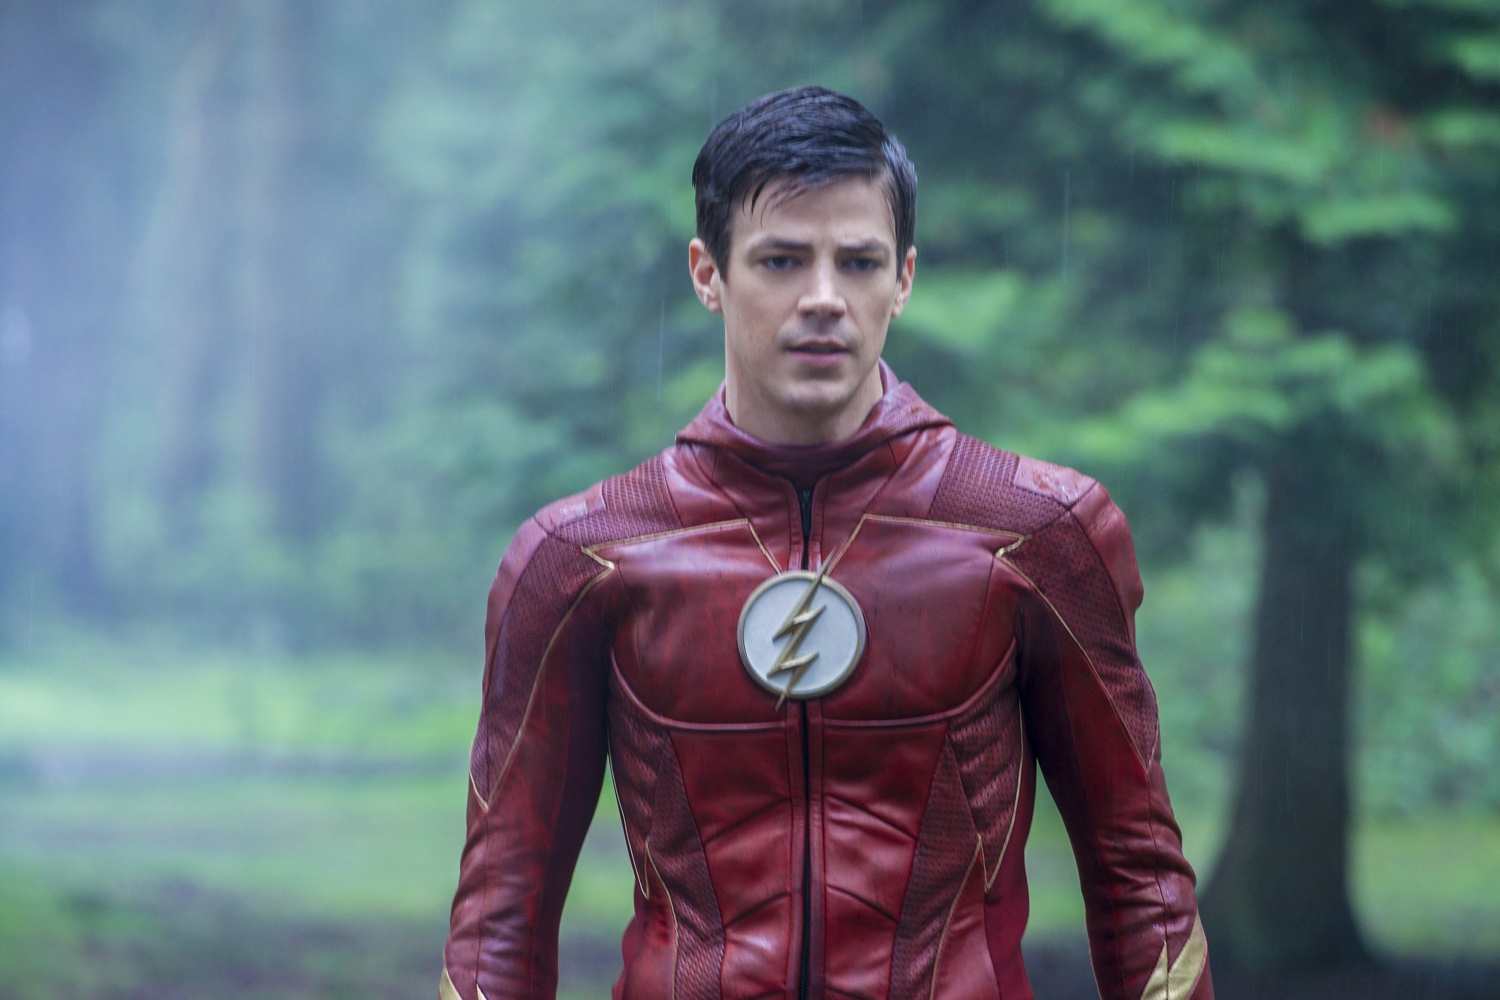 Grant Gustin wants to keep on playing The Flash